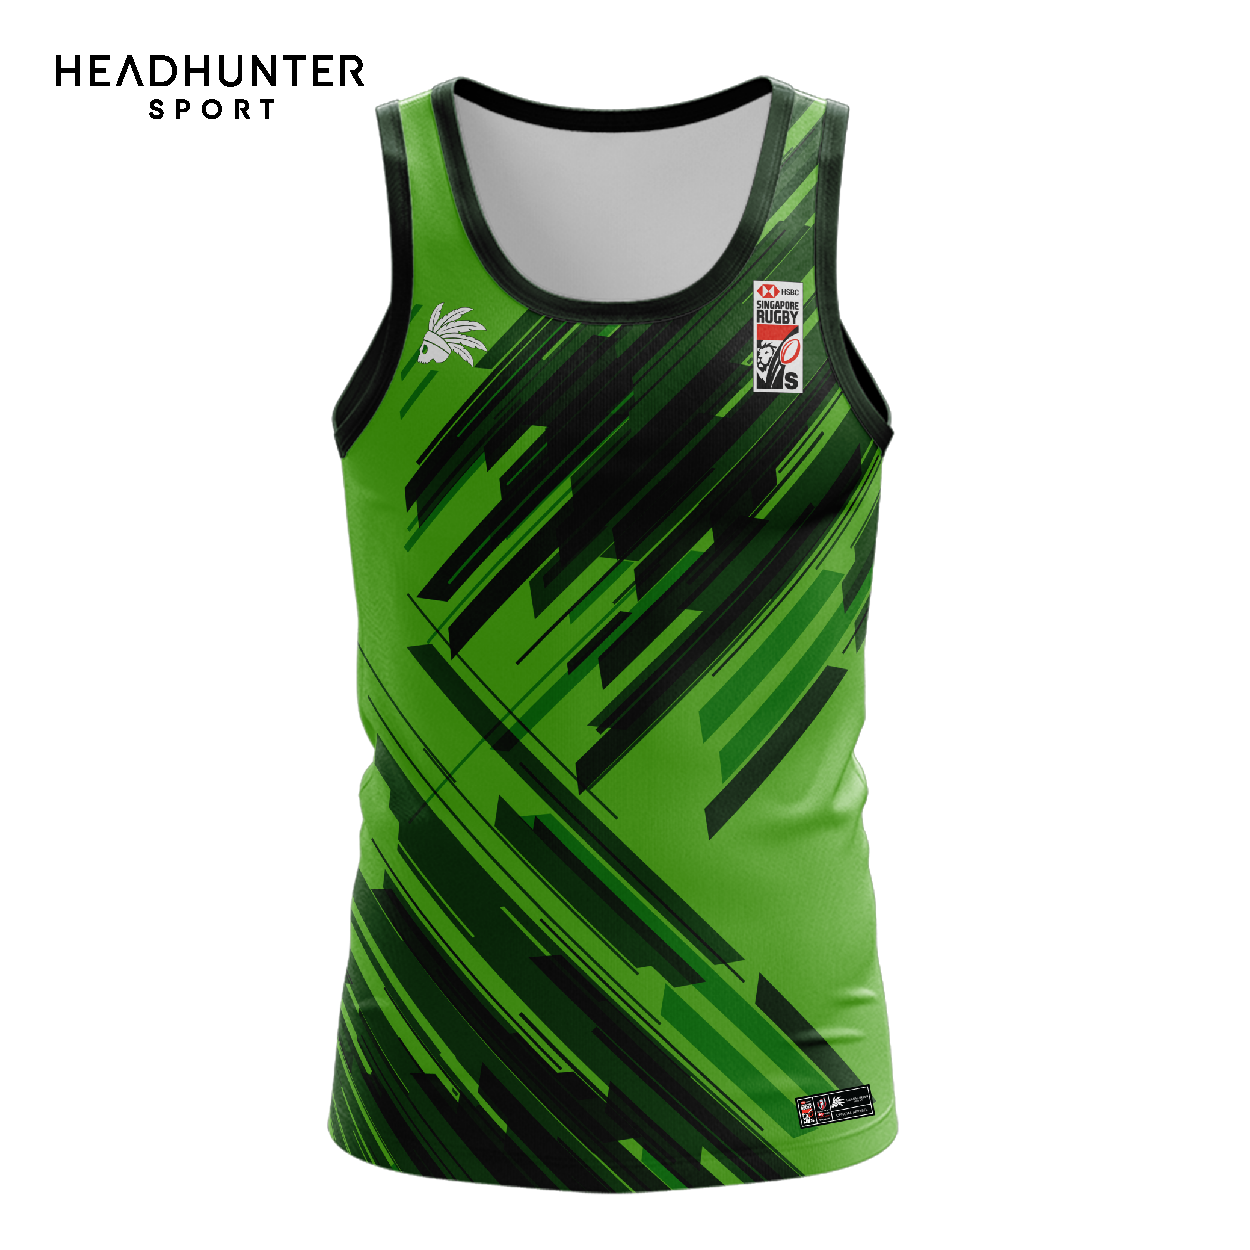 HSBC RUGBY 7S SERIES SINGAPORE 2019 MERCHANDISE SOUTH AFRICA SINGLET